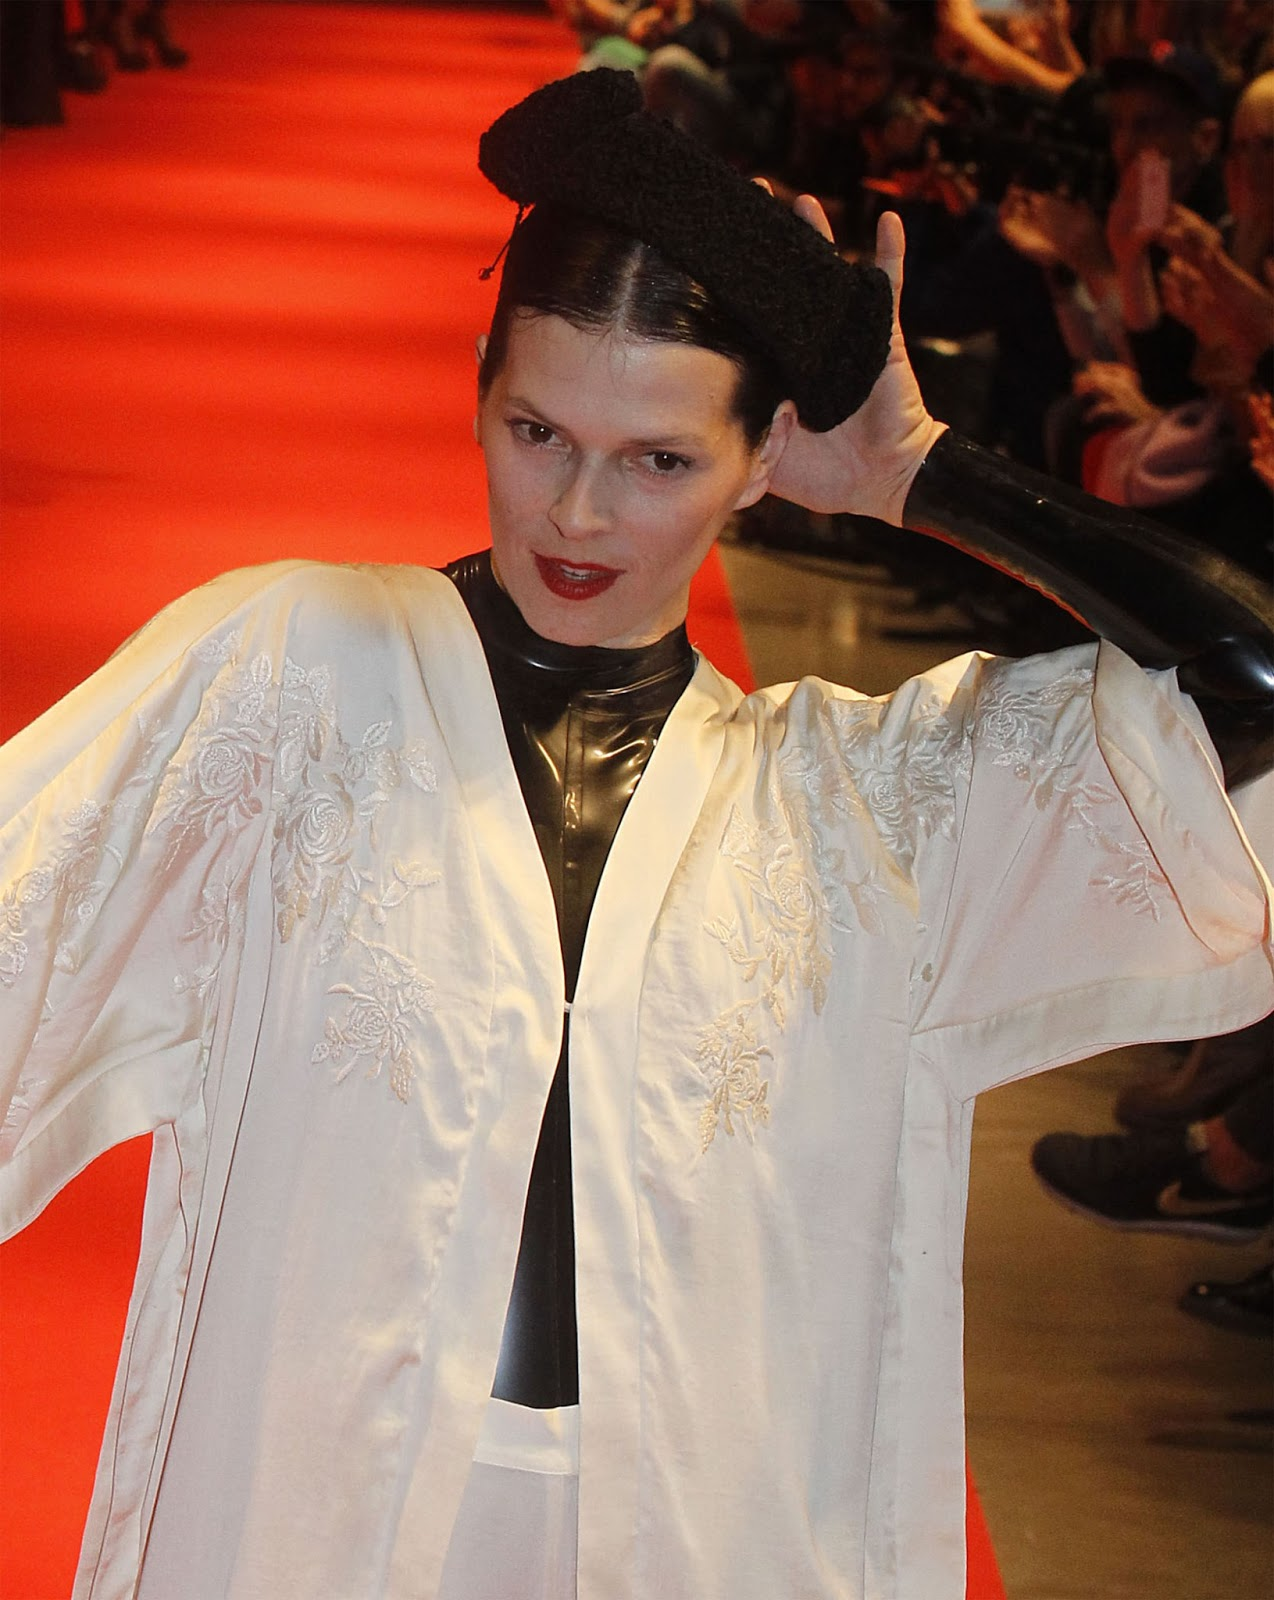 #MBFWM SEGÚN BIMBA BOSÉ Y MAHOU COLLECTION.